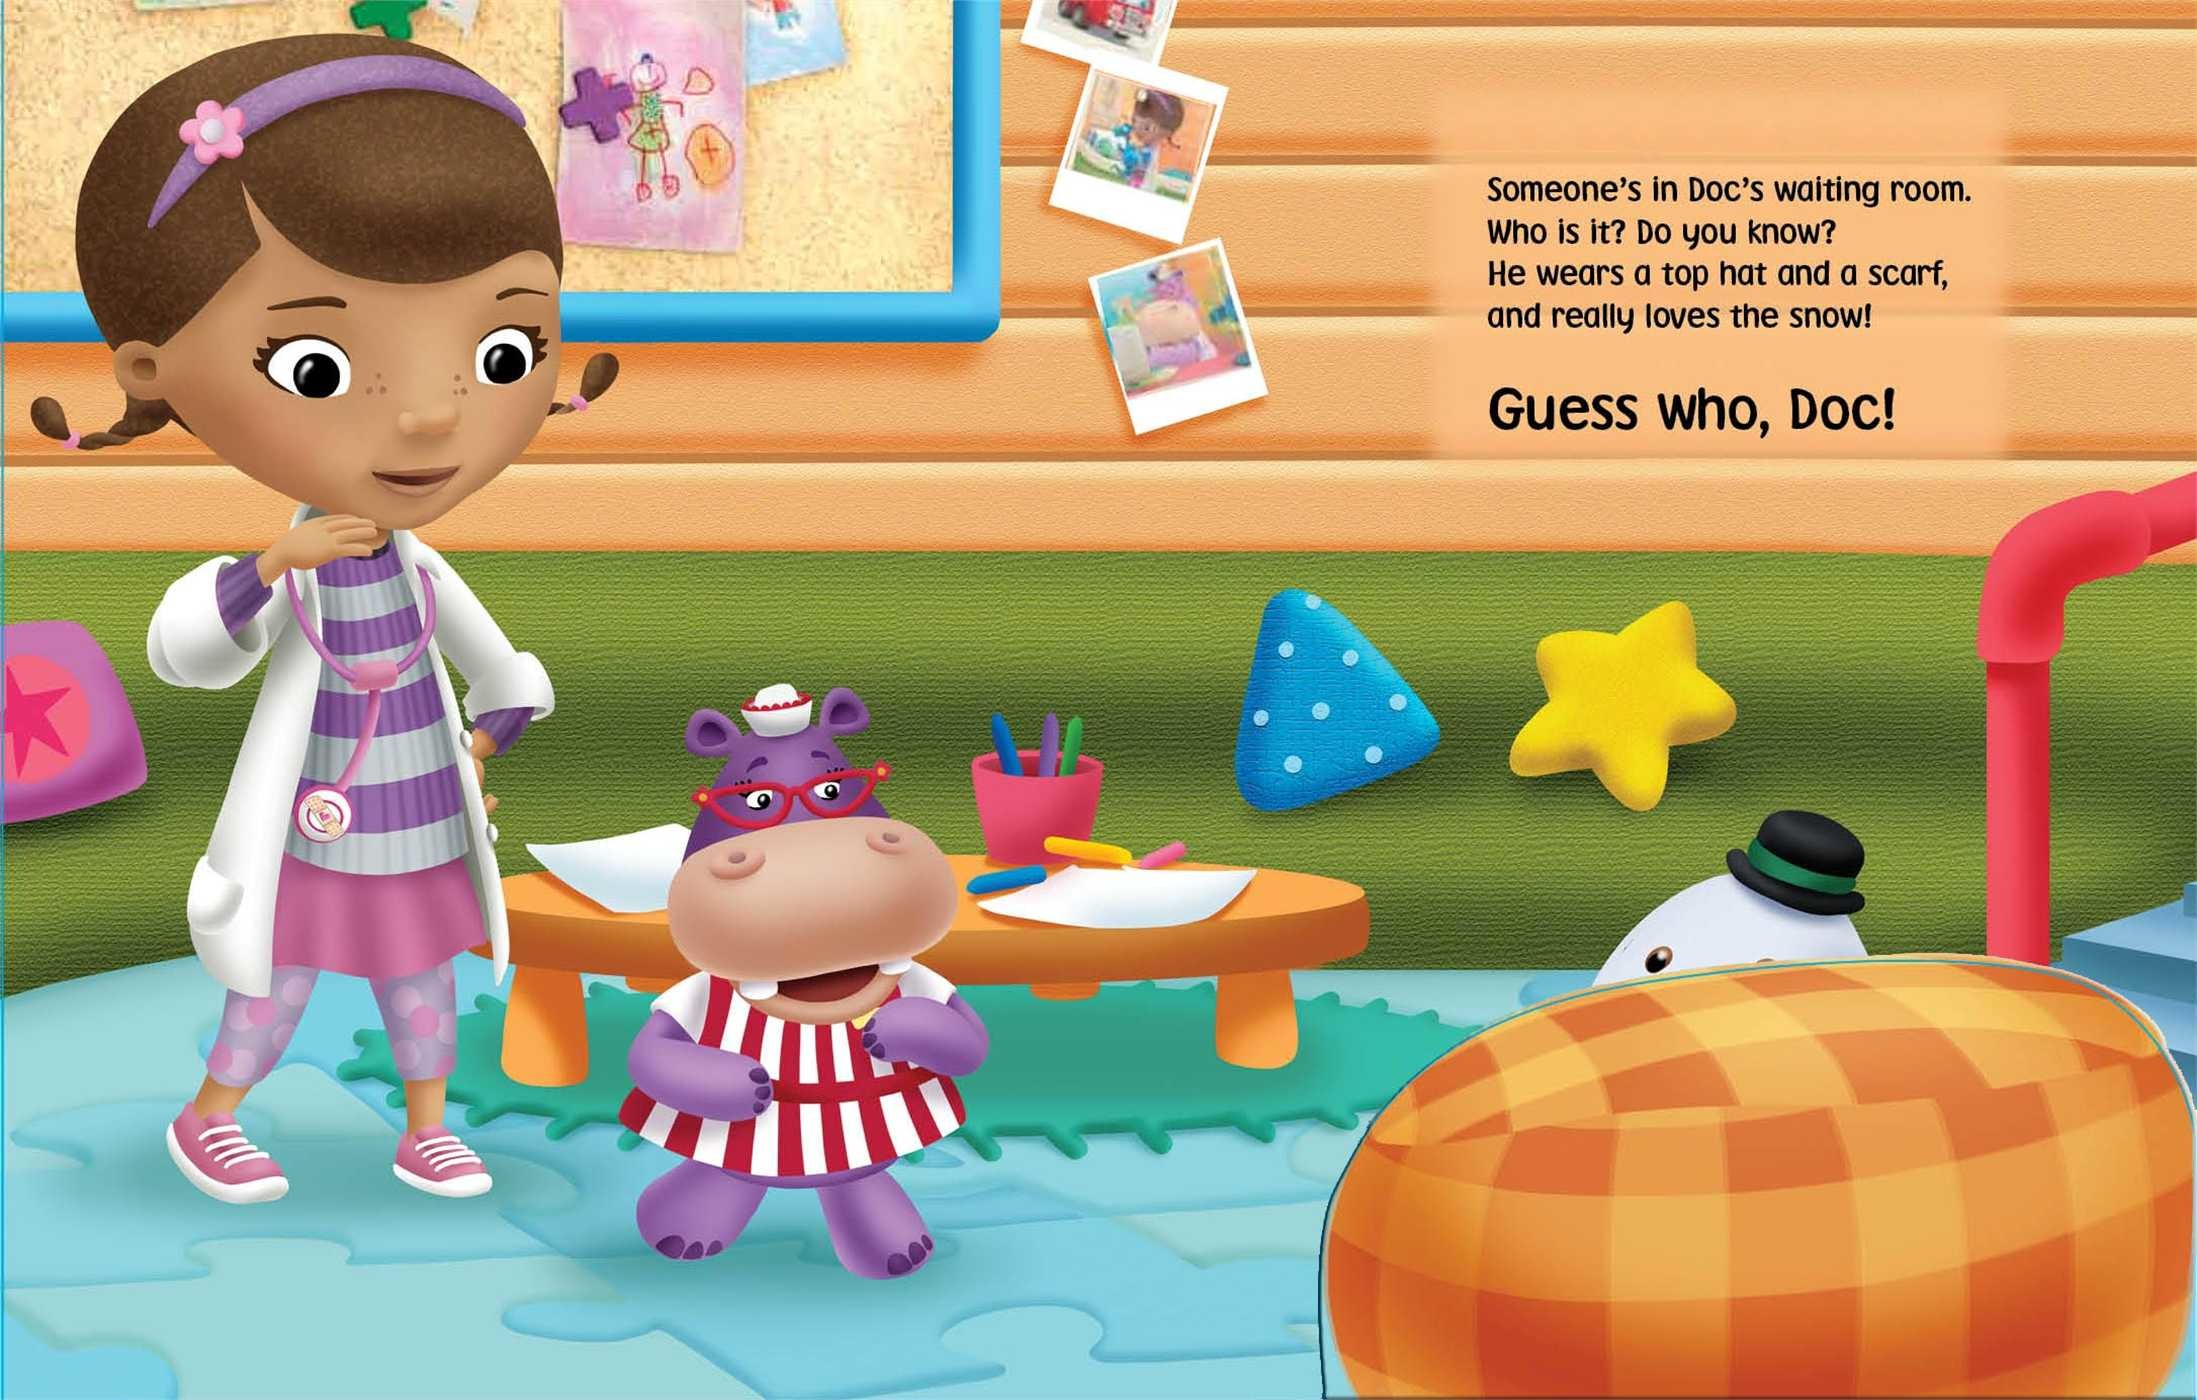 Disney doc mcstuffins guess who doc 9780794430054.in03